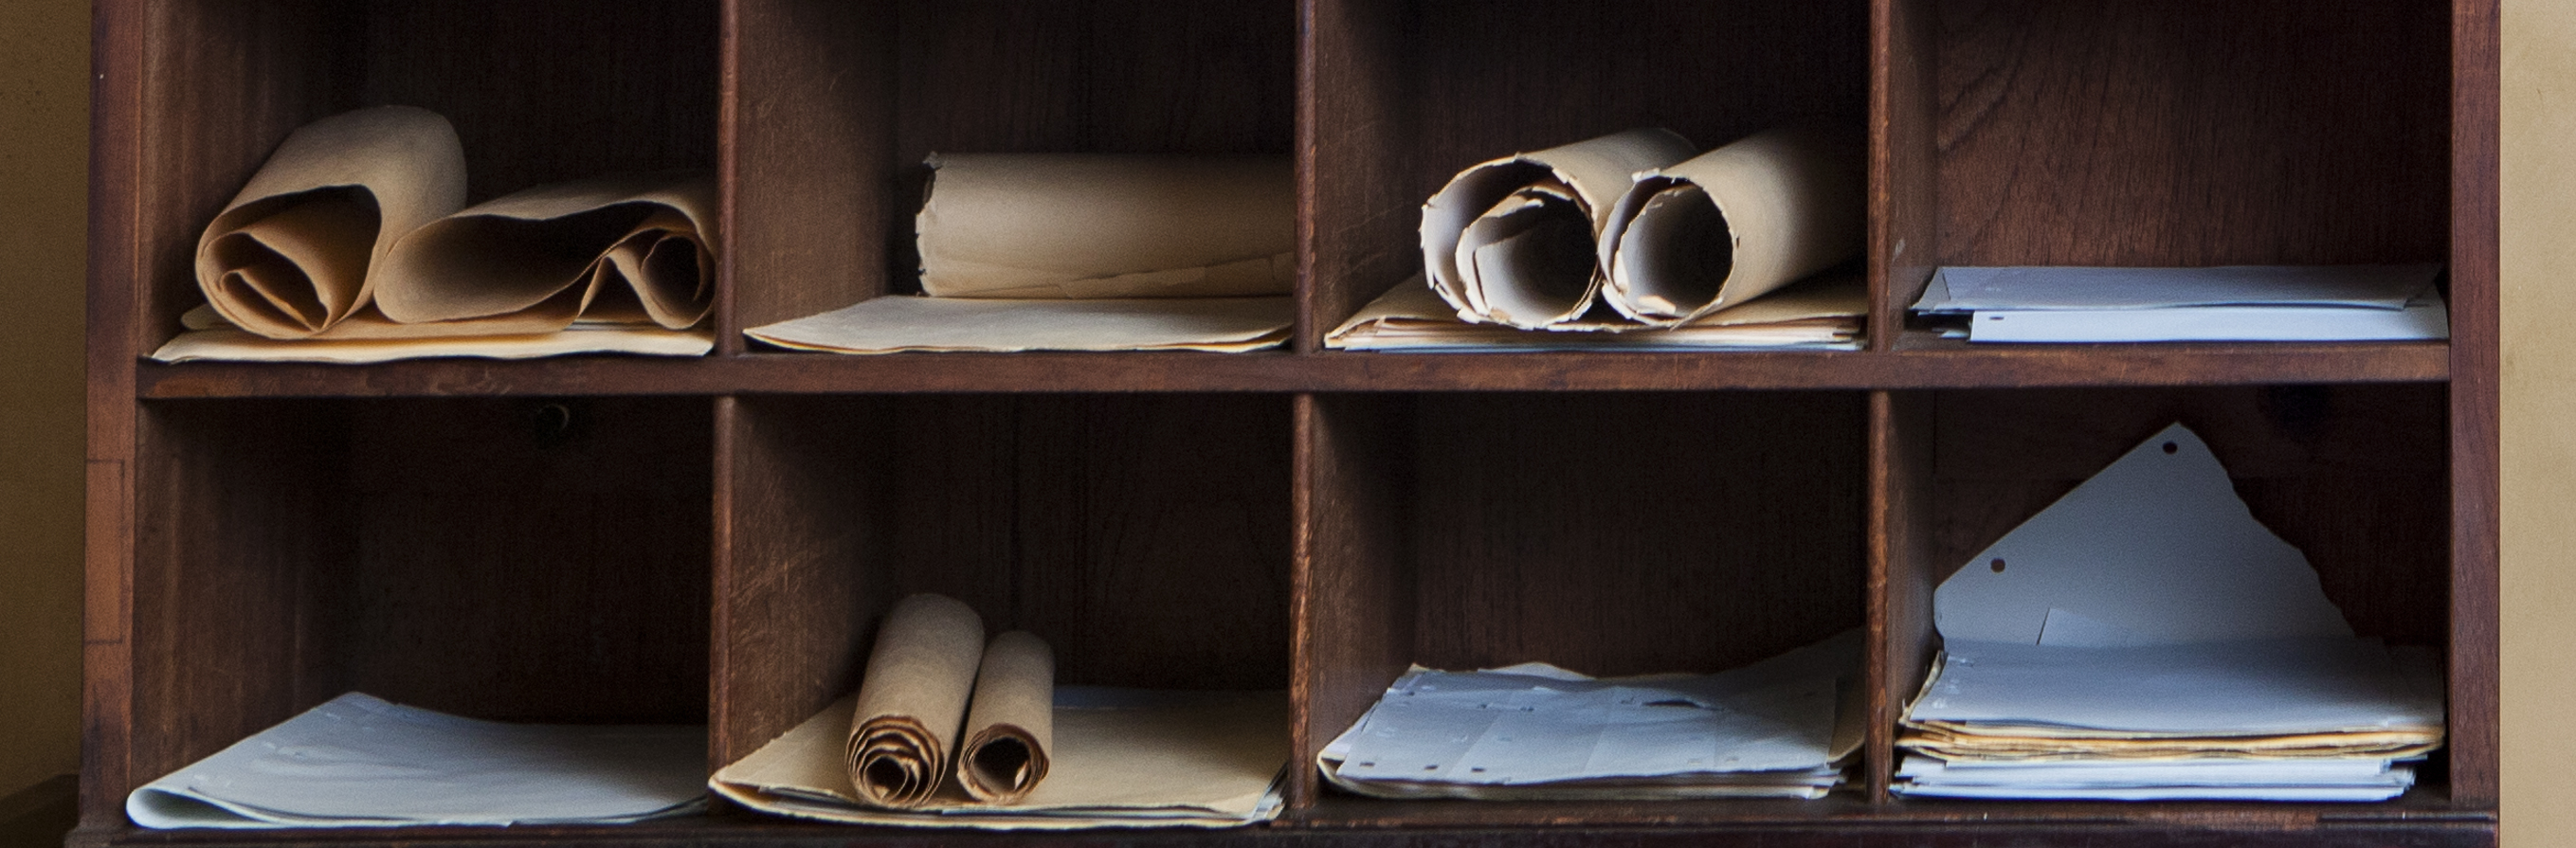 Closeup of old shelving with paper documents and rolled up papers.